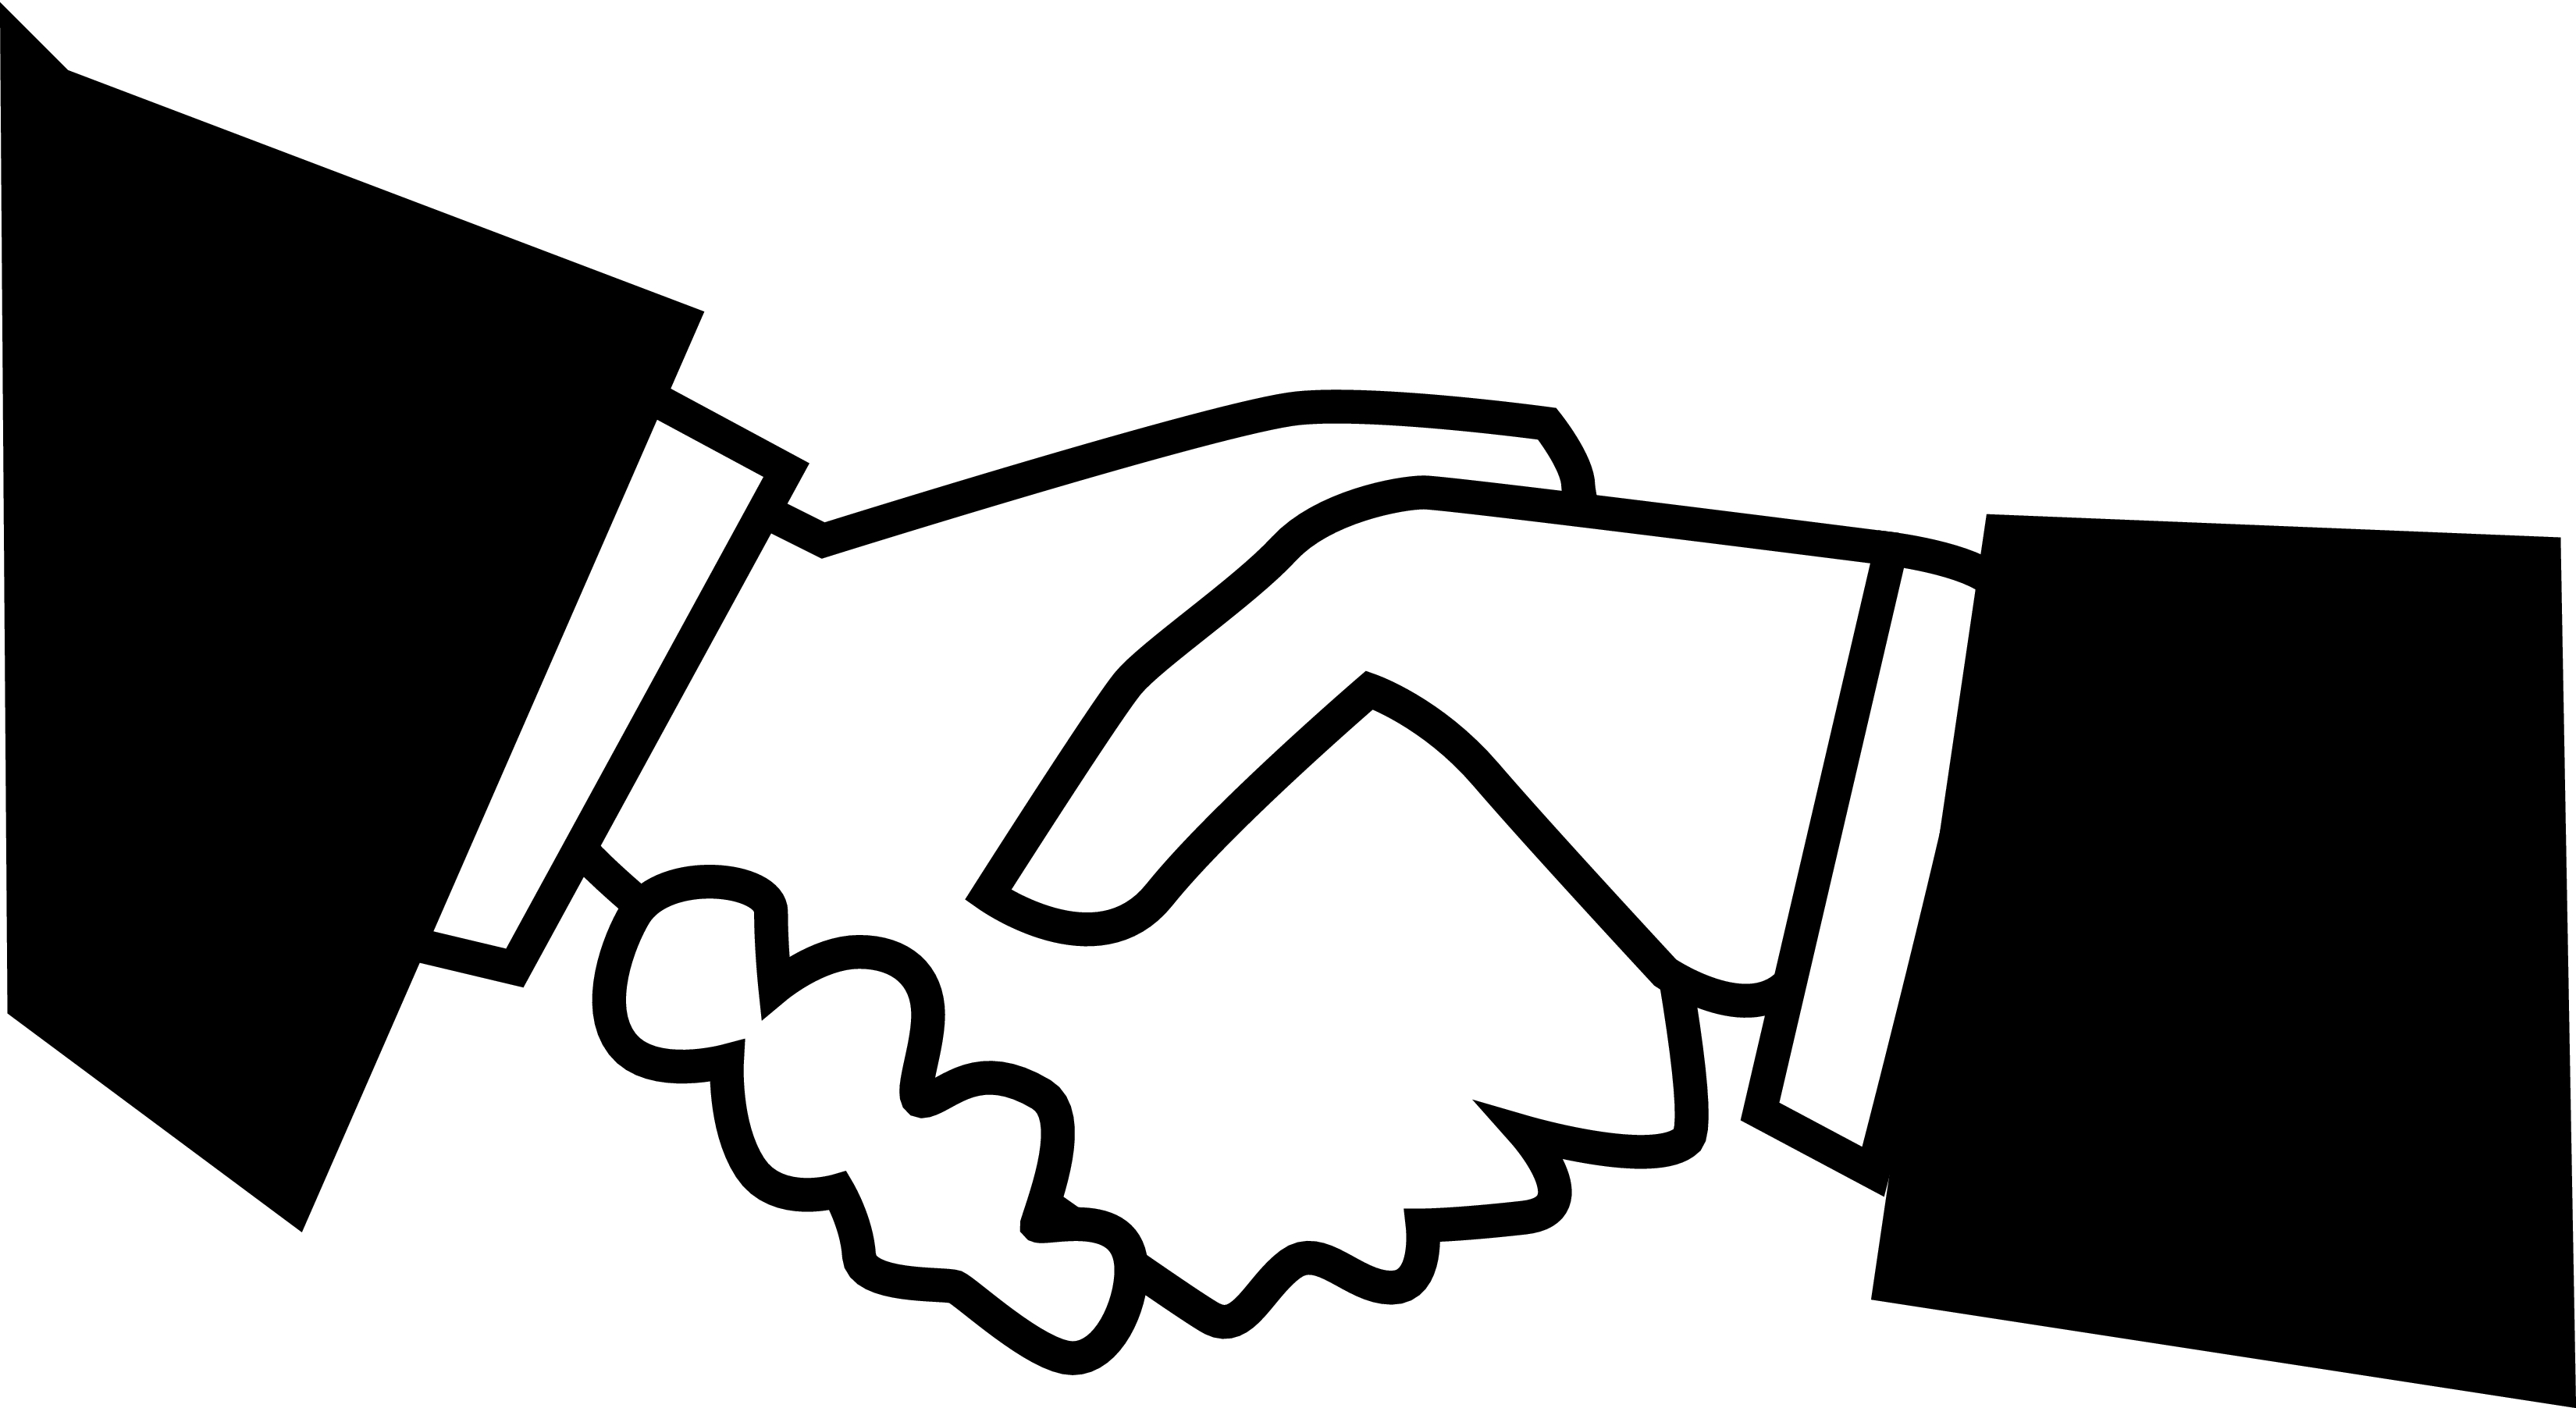 Logo clipart shake hand Hand clipart Shaking People Collection